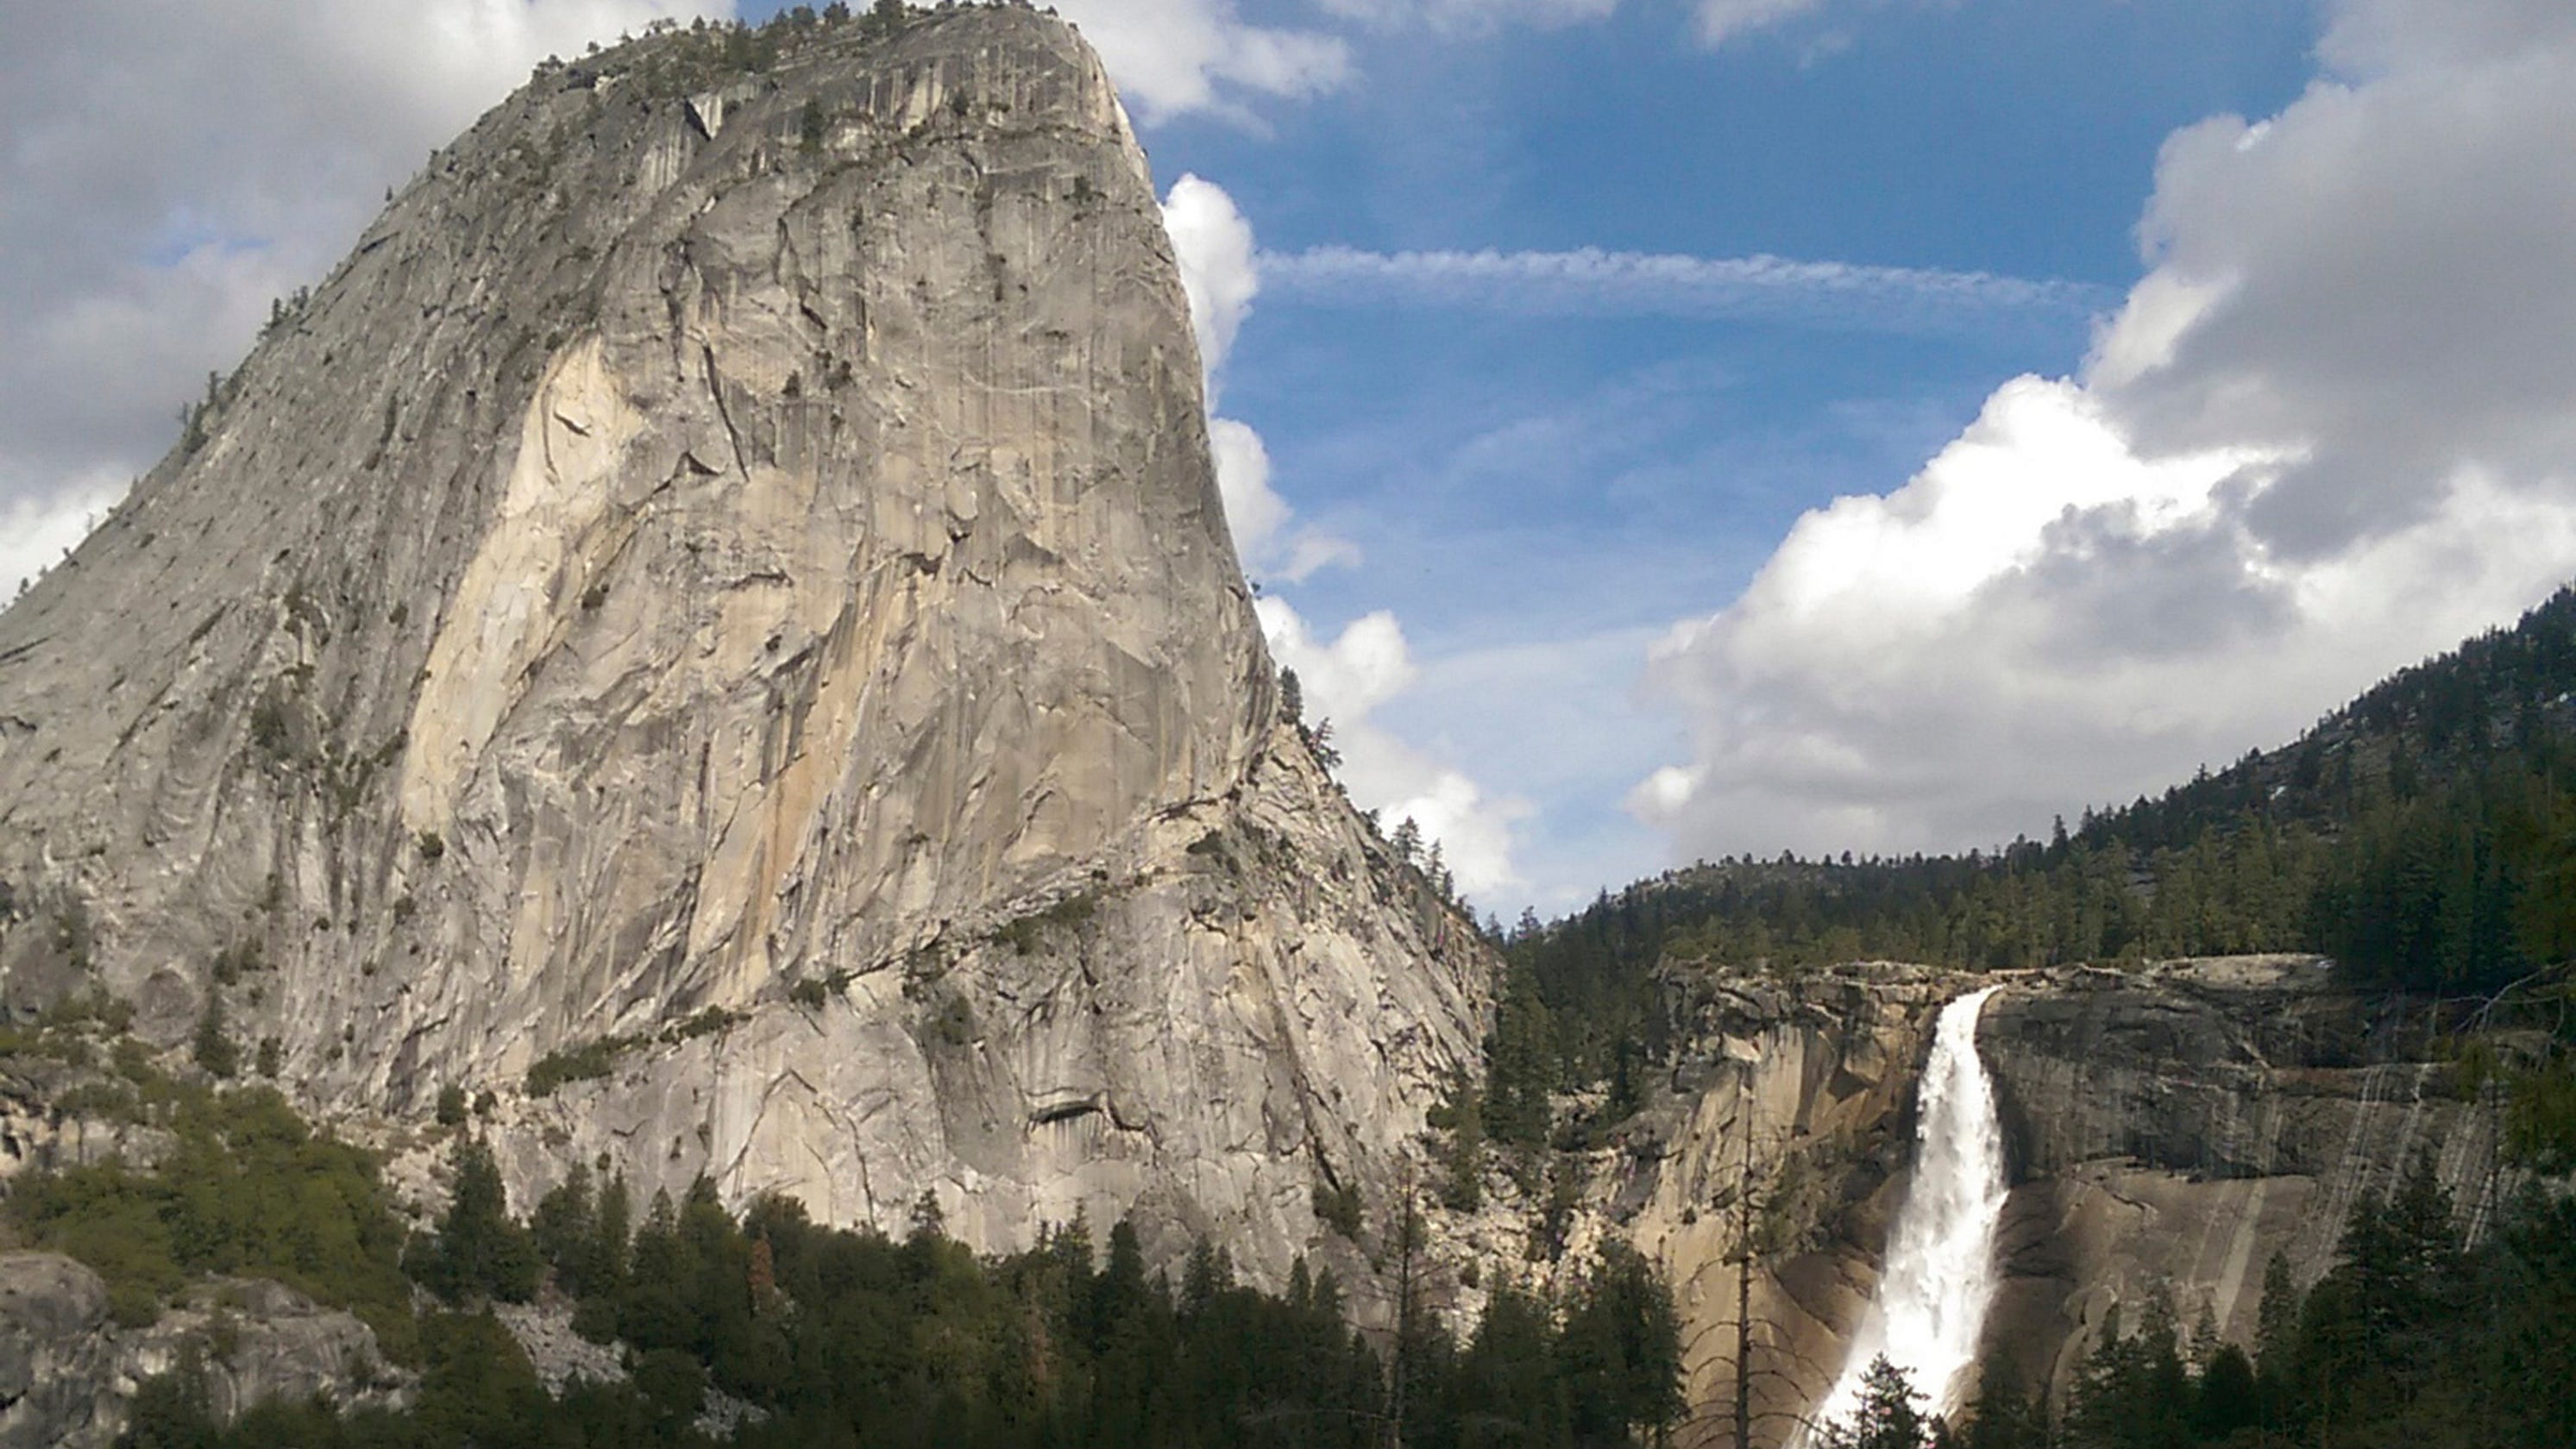 Man died in Yosemite on Christmas Day amid government shutdown